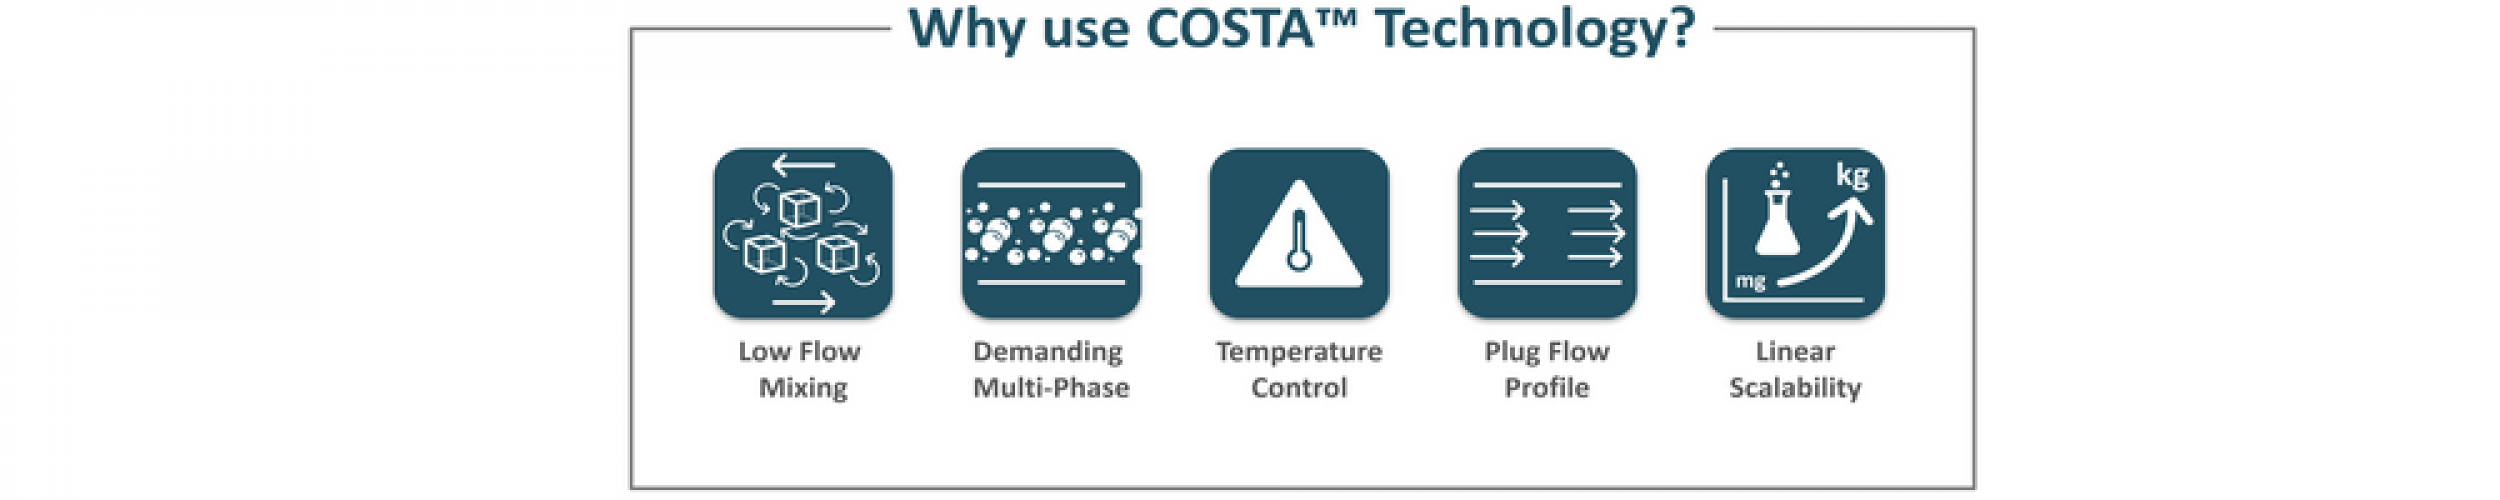 COSTA™ Technology